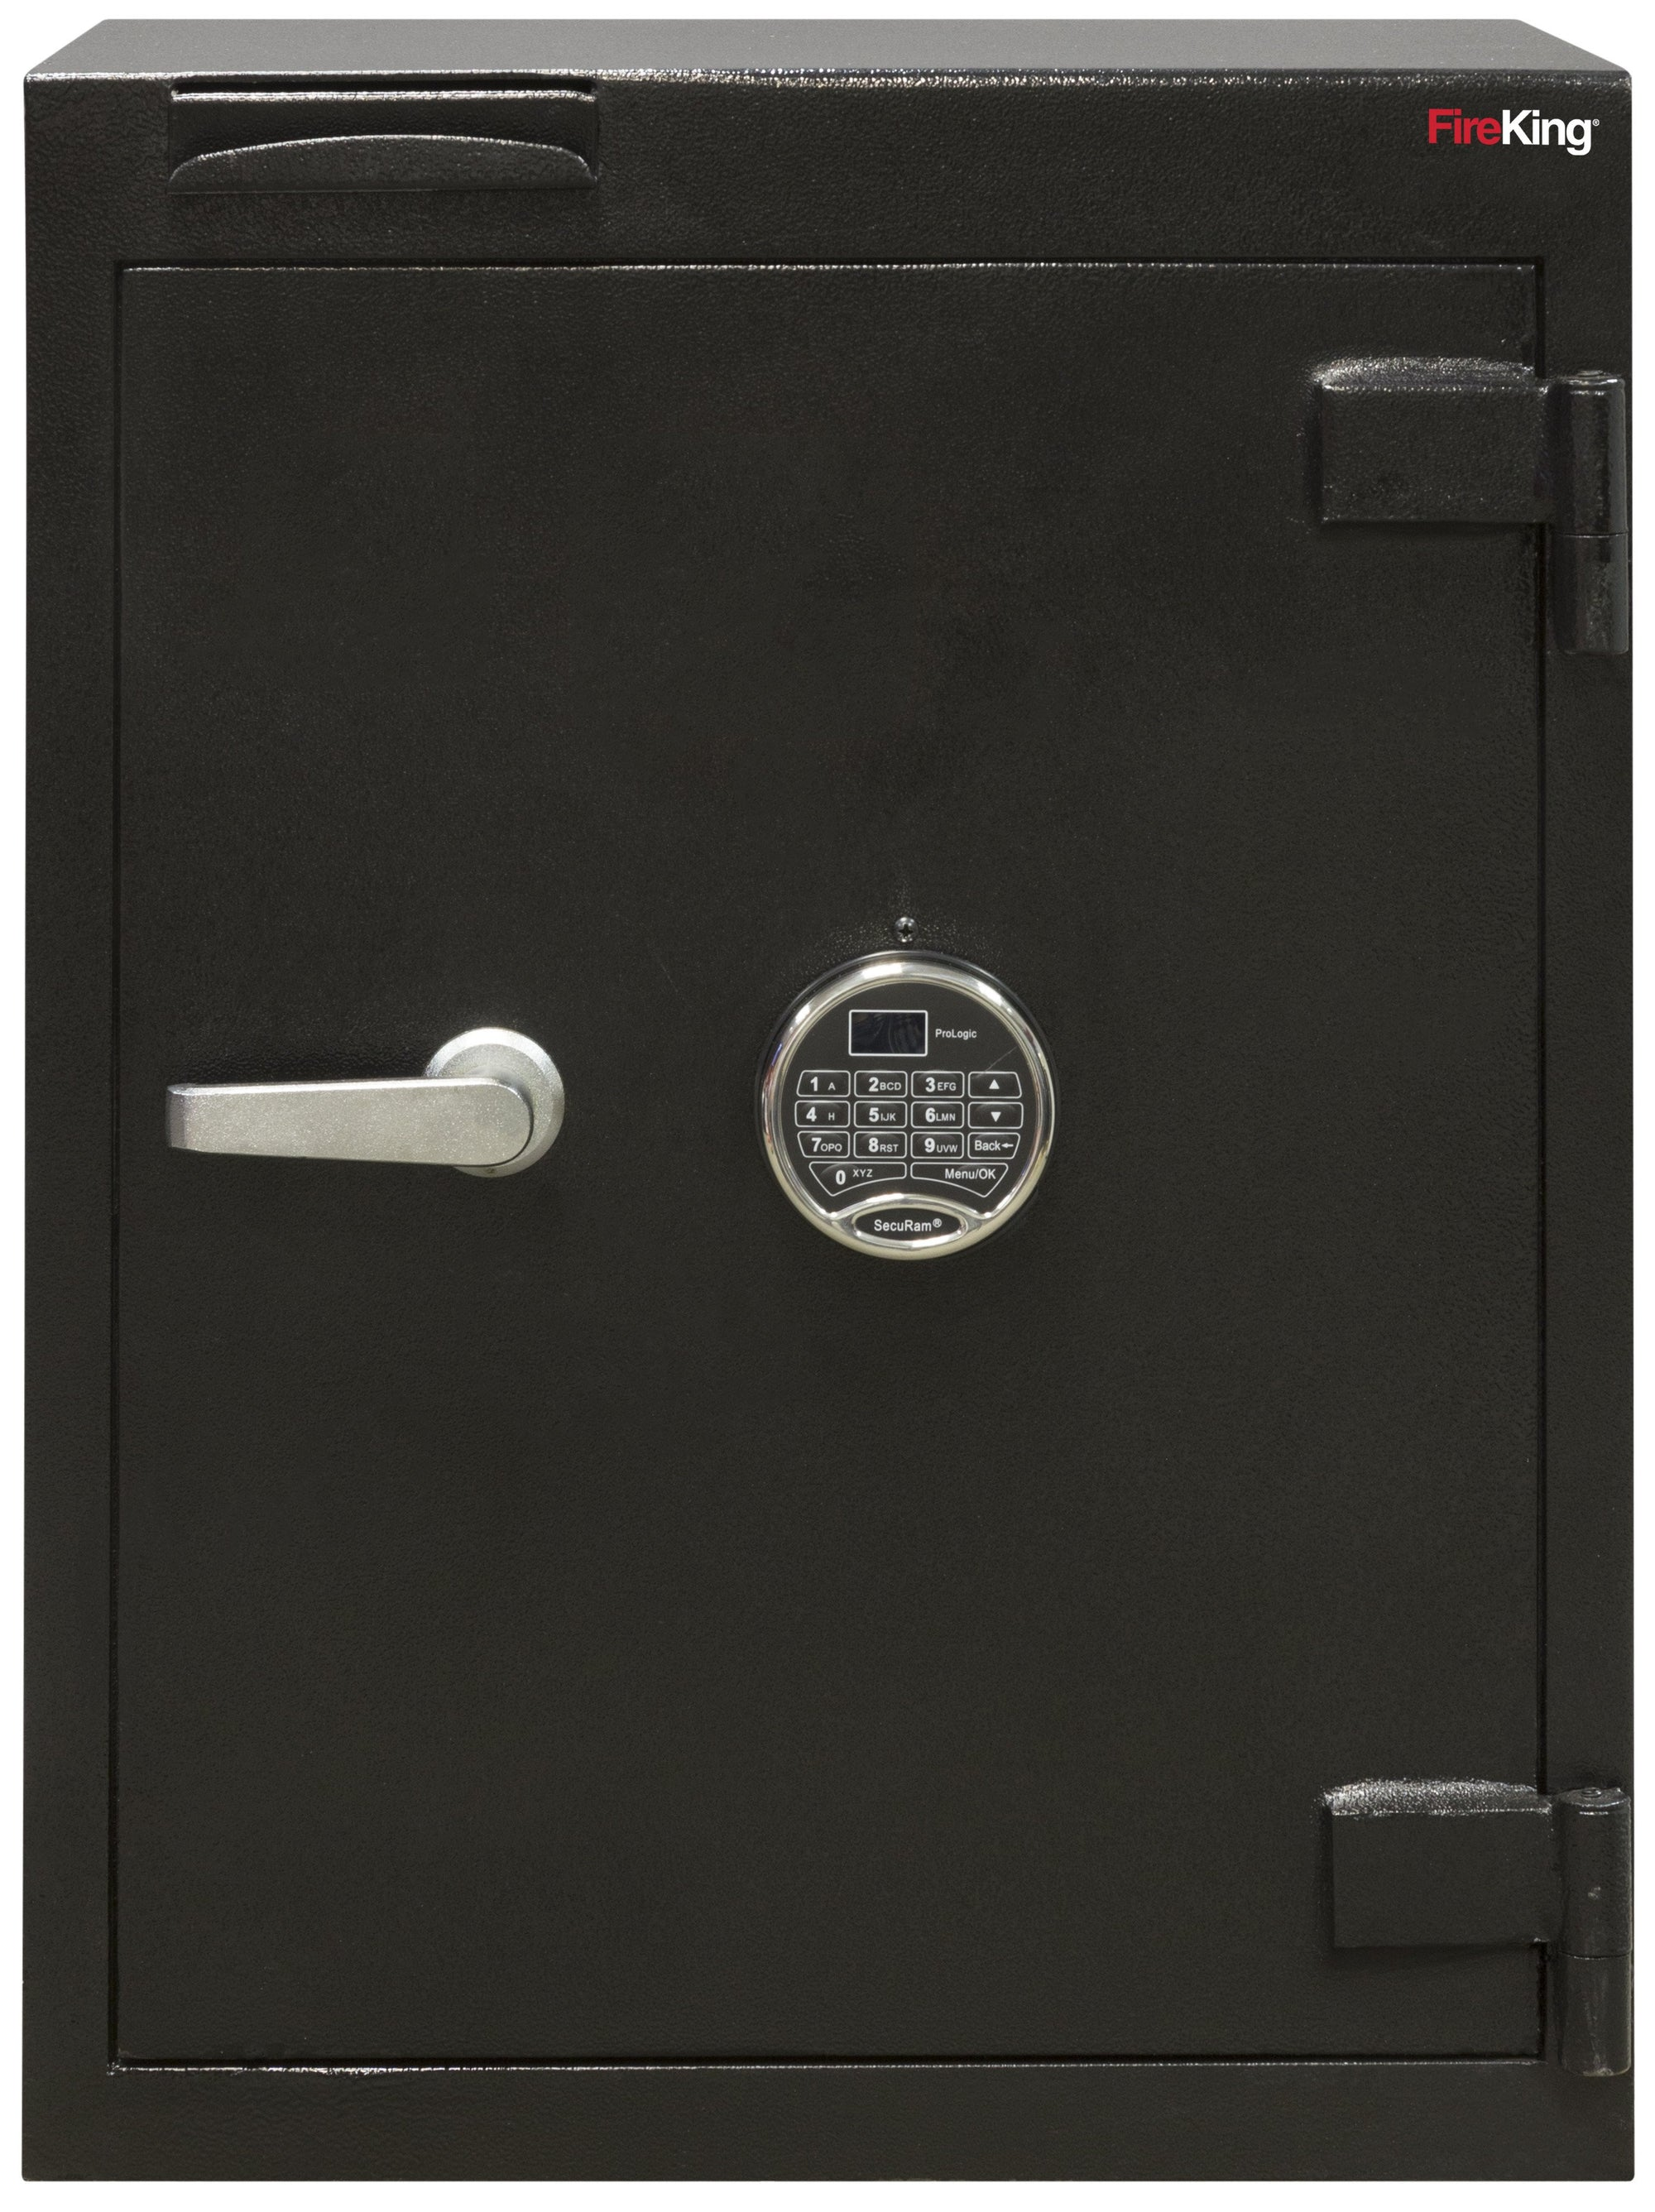 Burglary Safes - FireKing B2820IC Drop Drawer Safes